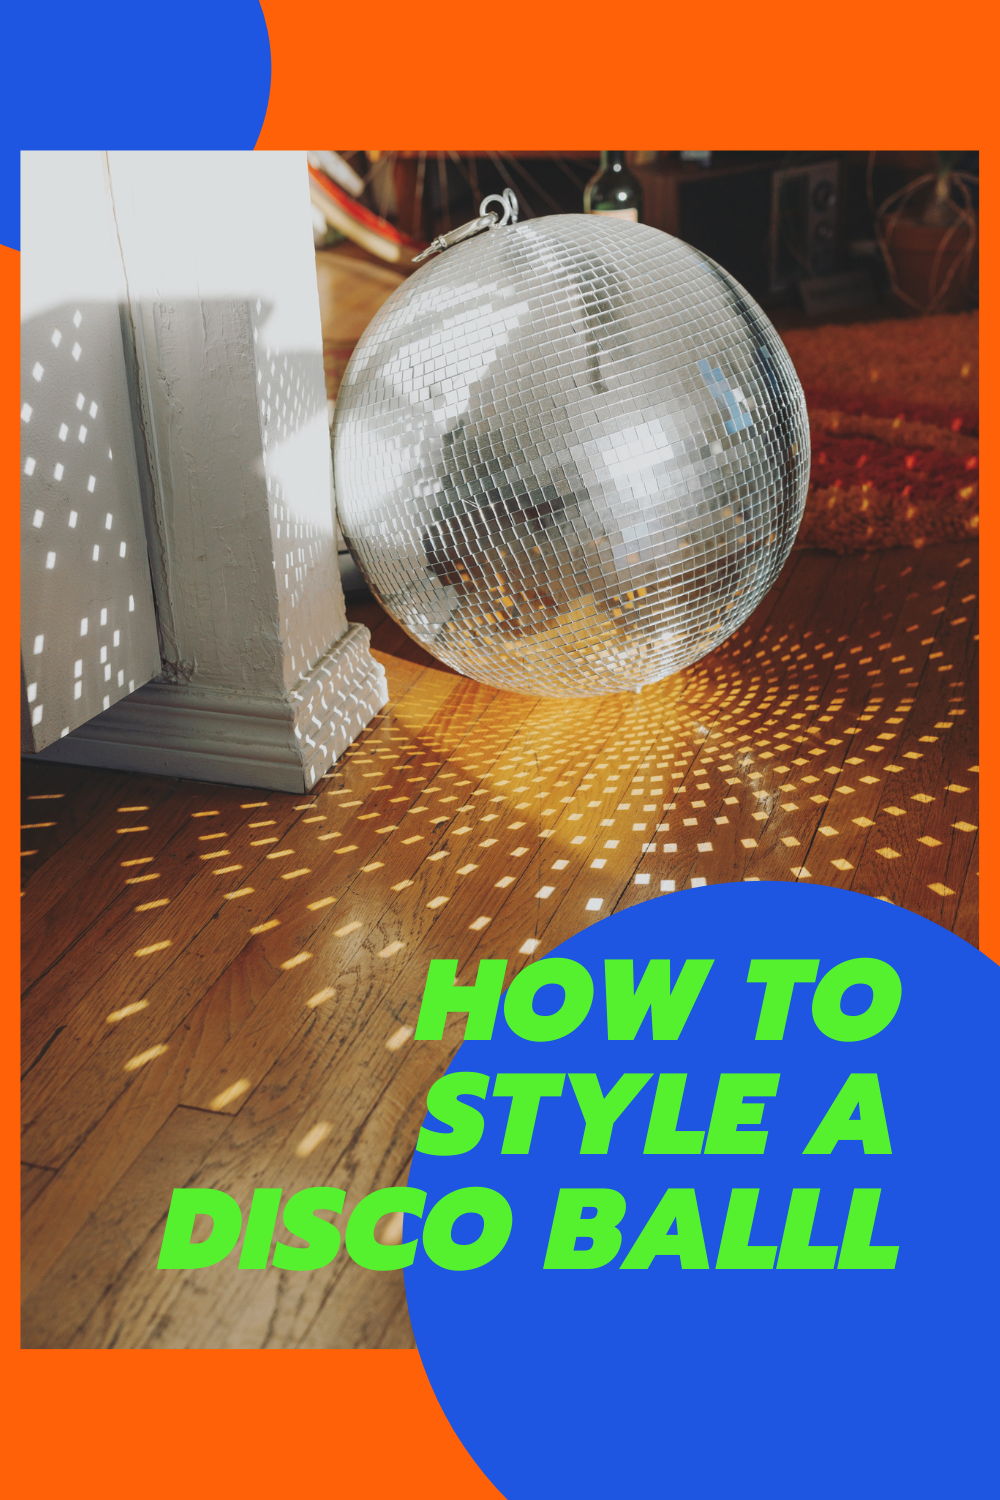 How to style a disco ball